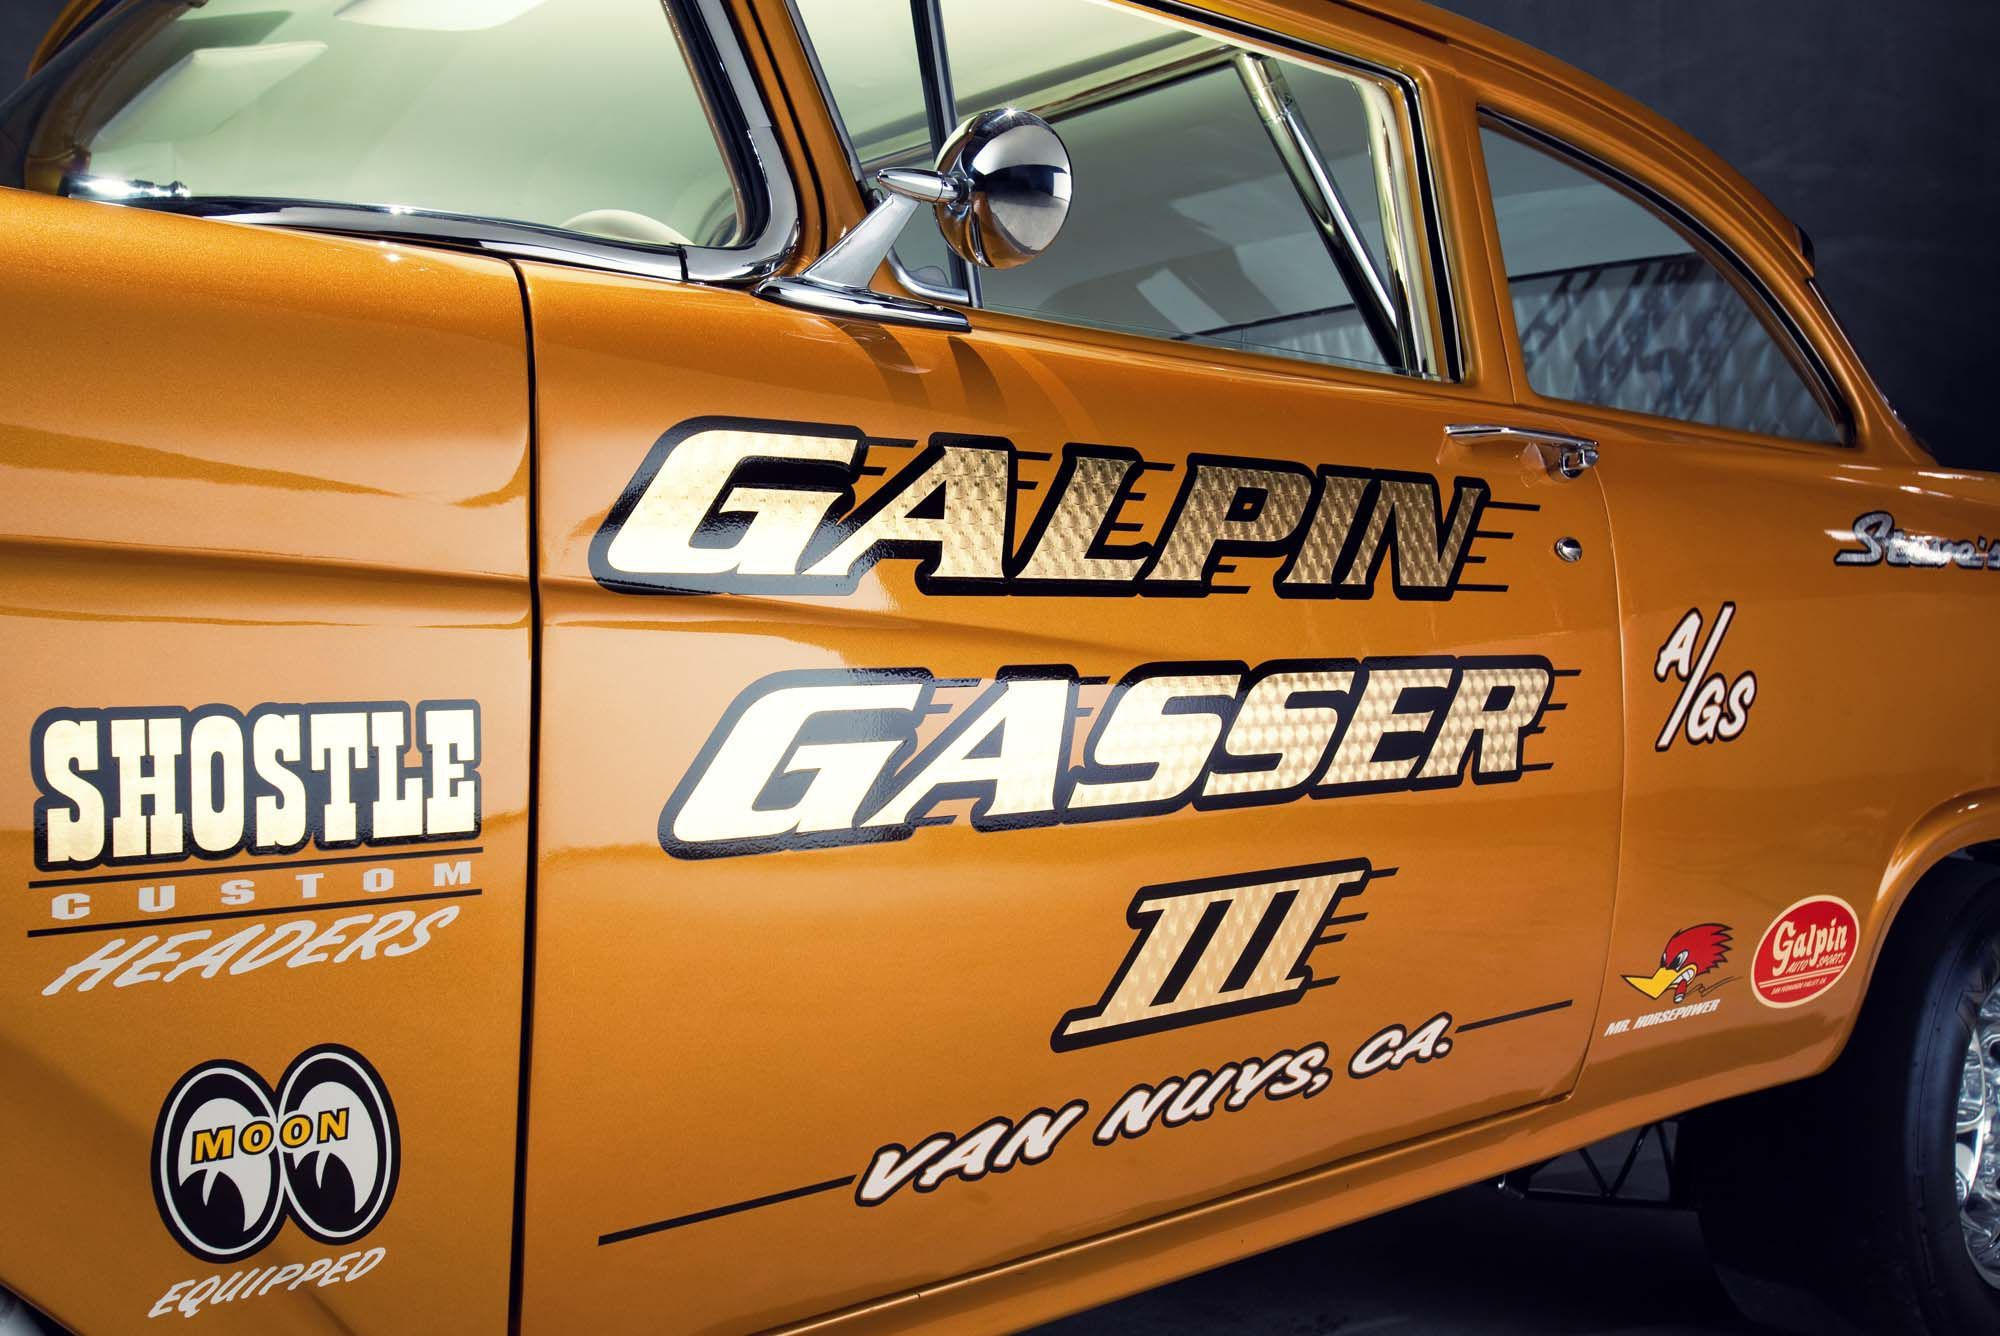 Gasser Lettering Related Keywords Suggestions Gasser Lettering Long Tail Keywords Car Lettering Car Drag Racing